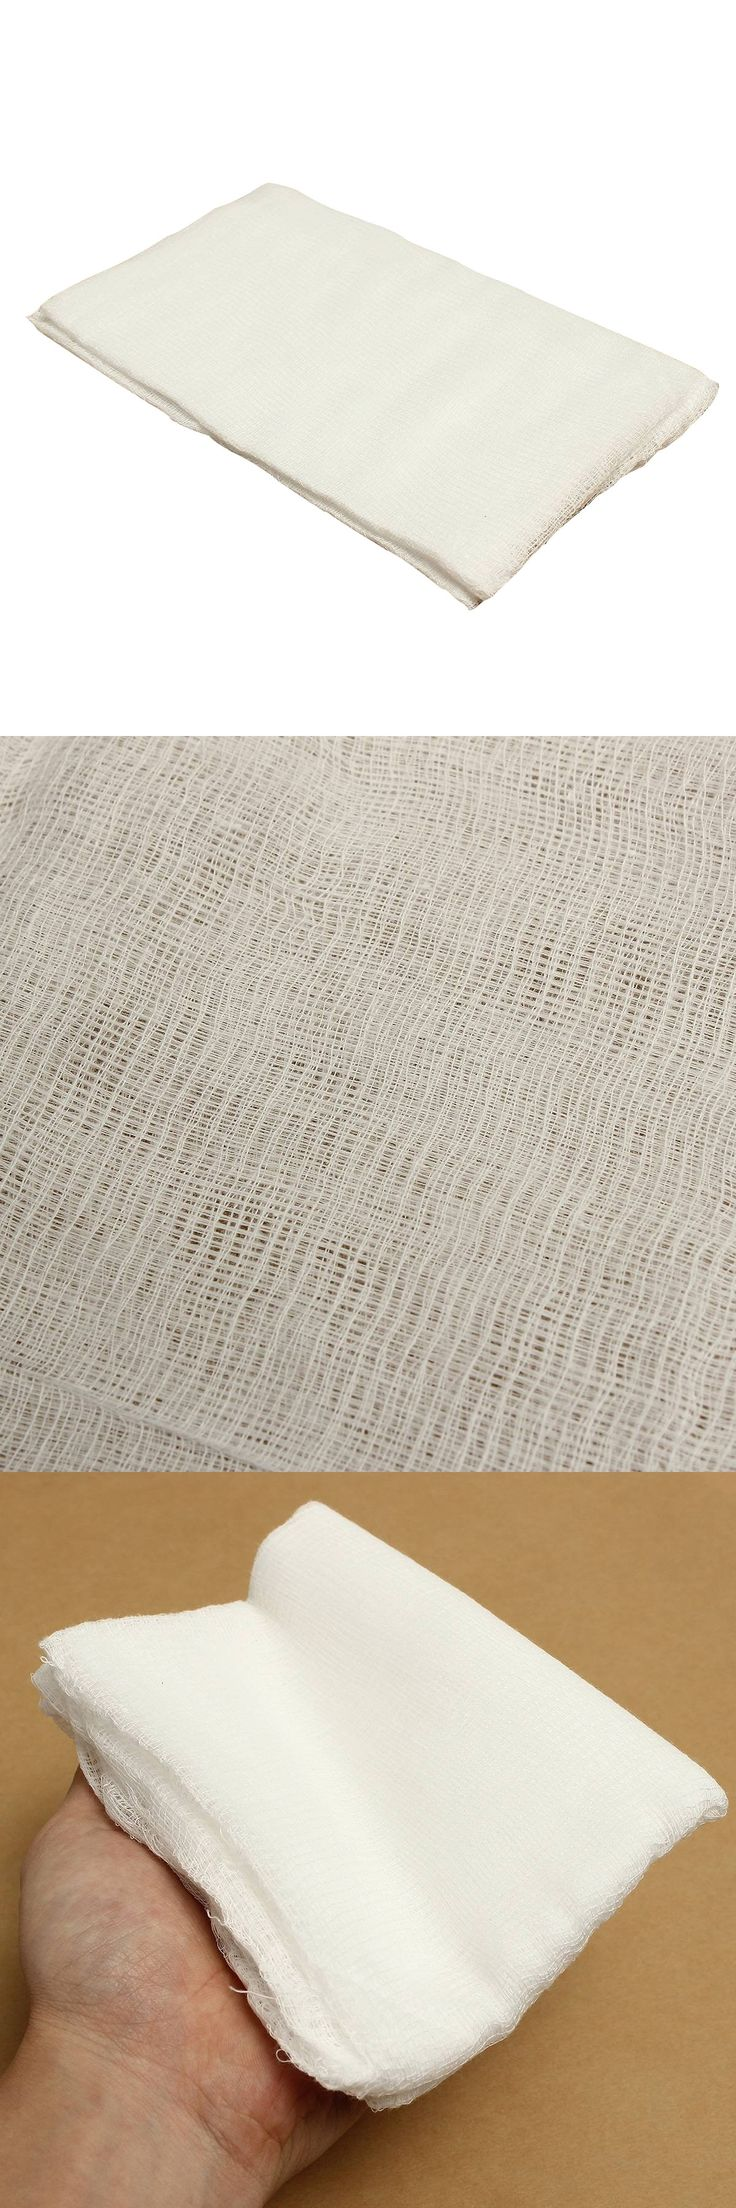 HOT-4-Yard Bleached Width 36inch Gauze Cheesecloth Cheese Making Fabric Muslin Kitchen Cooking